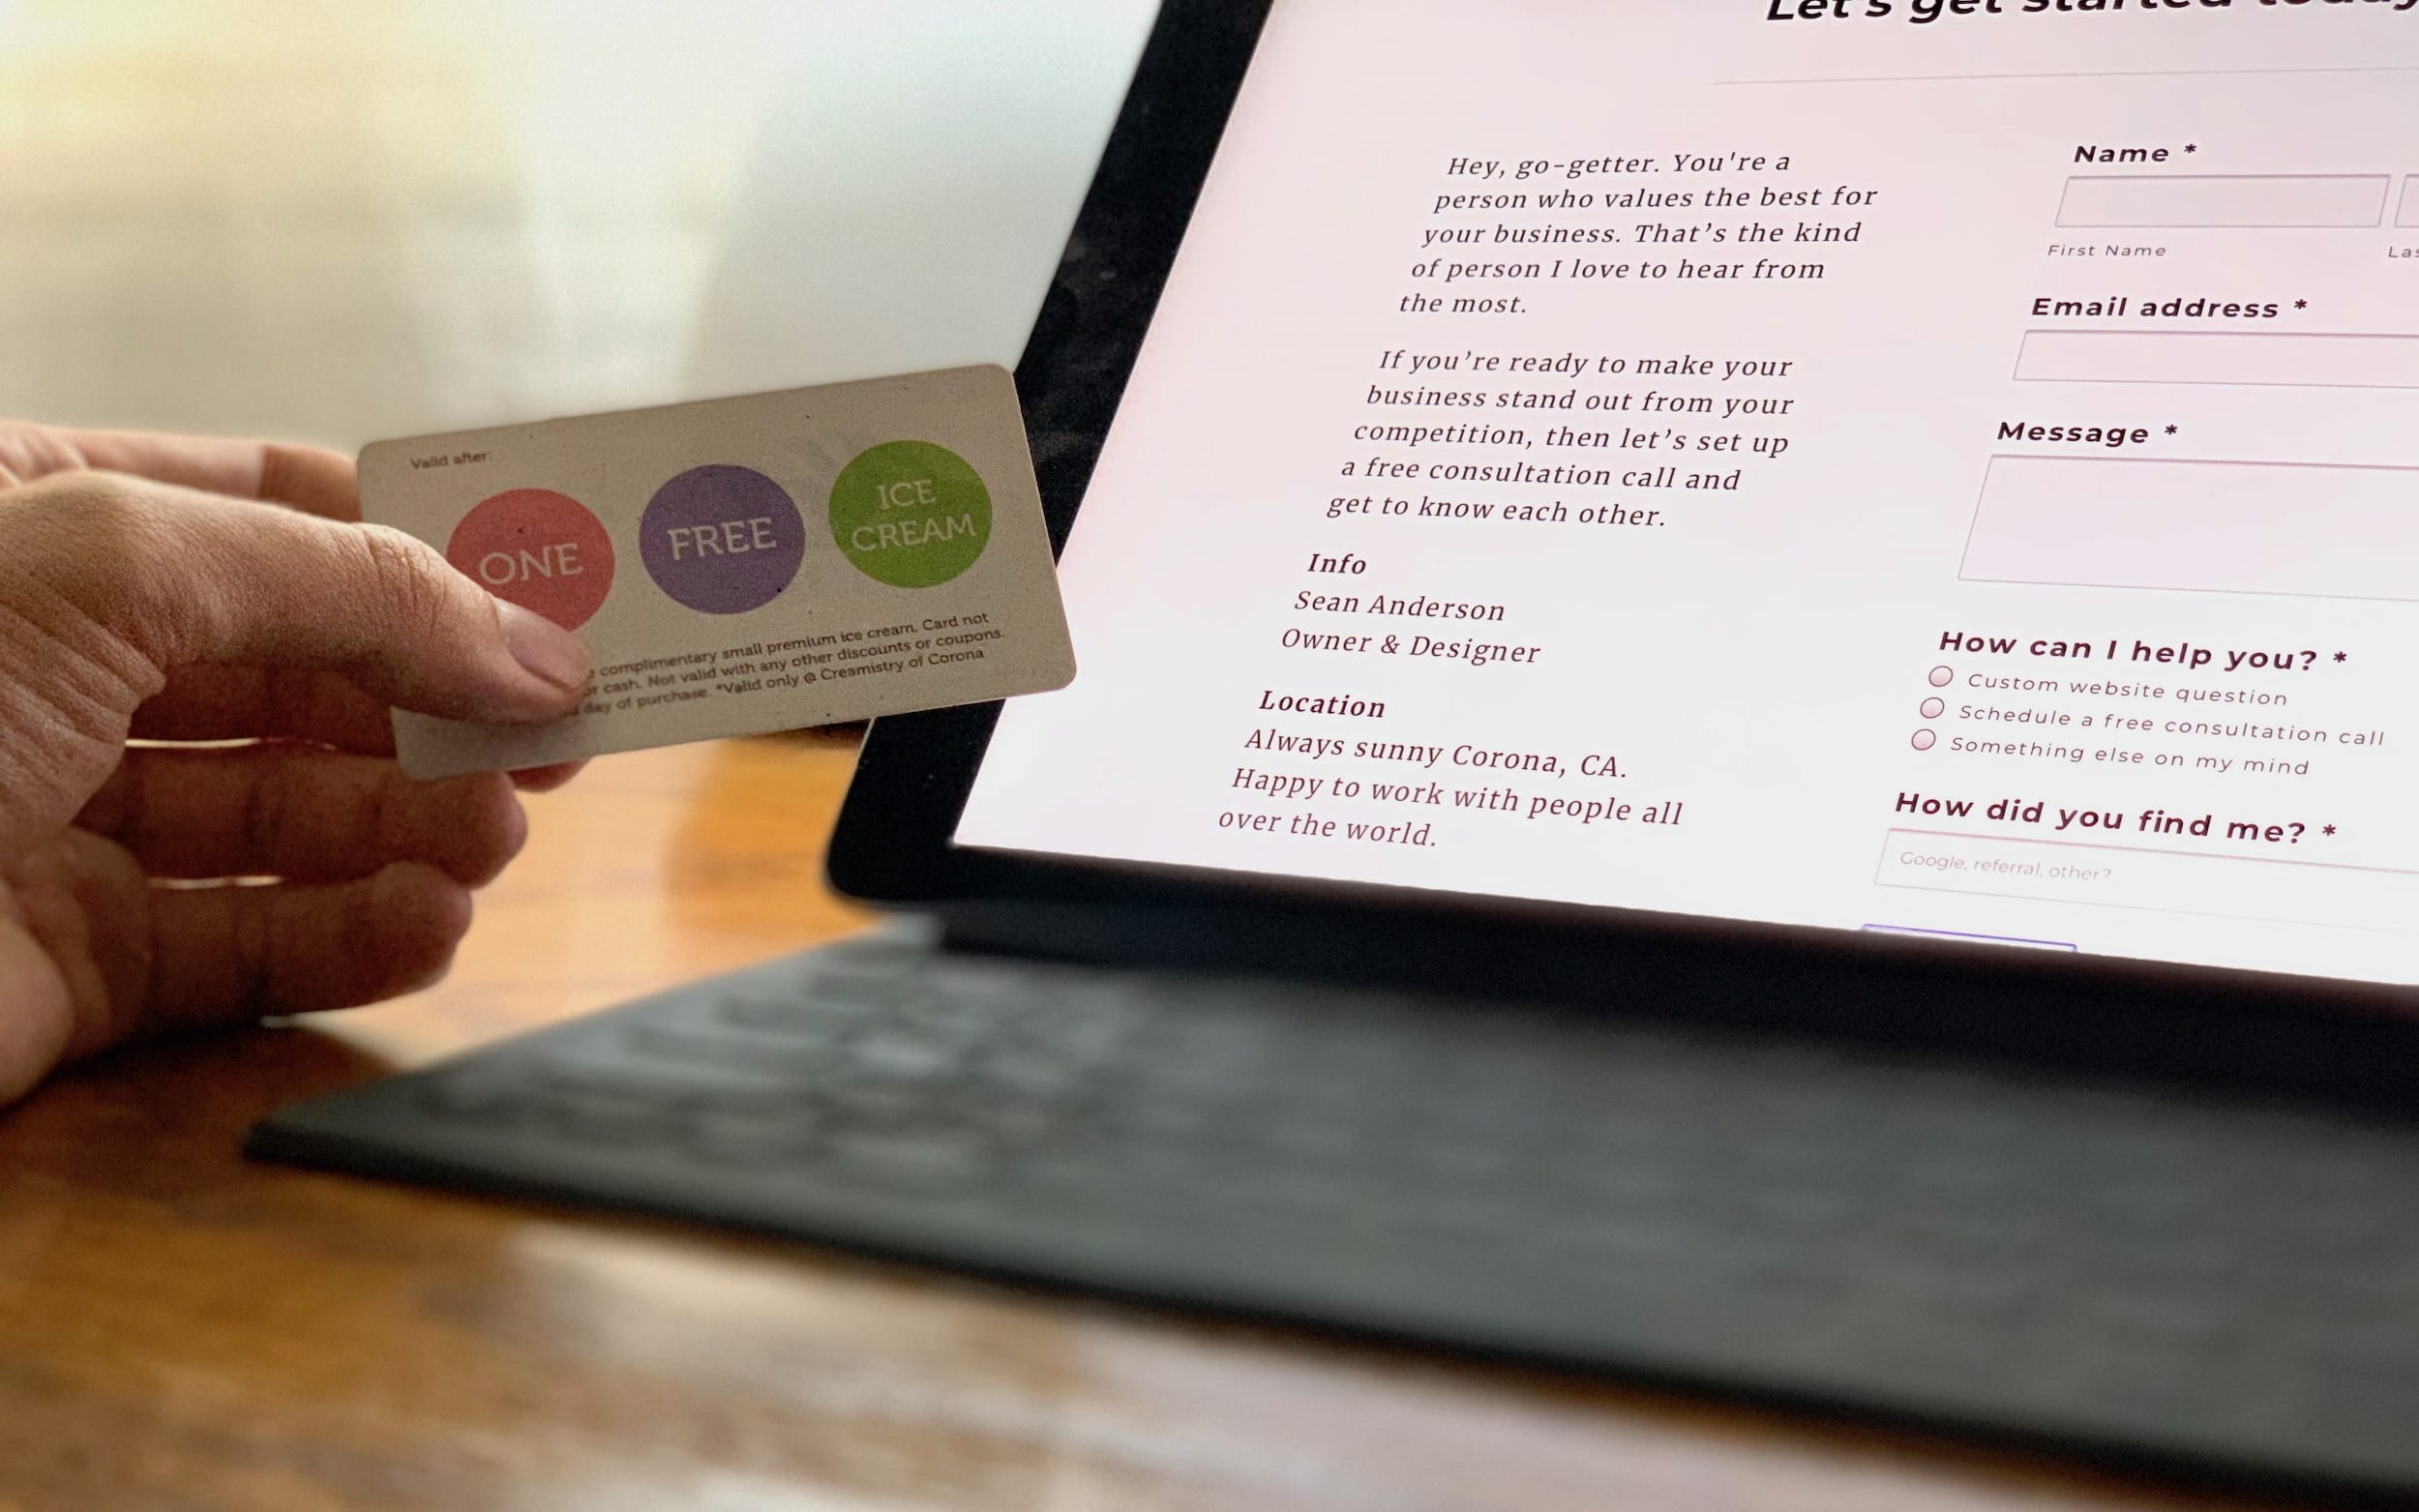 A man's hand holding a loyalty card while looking at a product page.